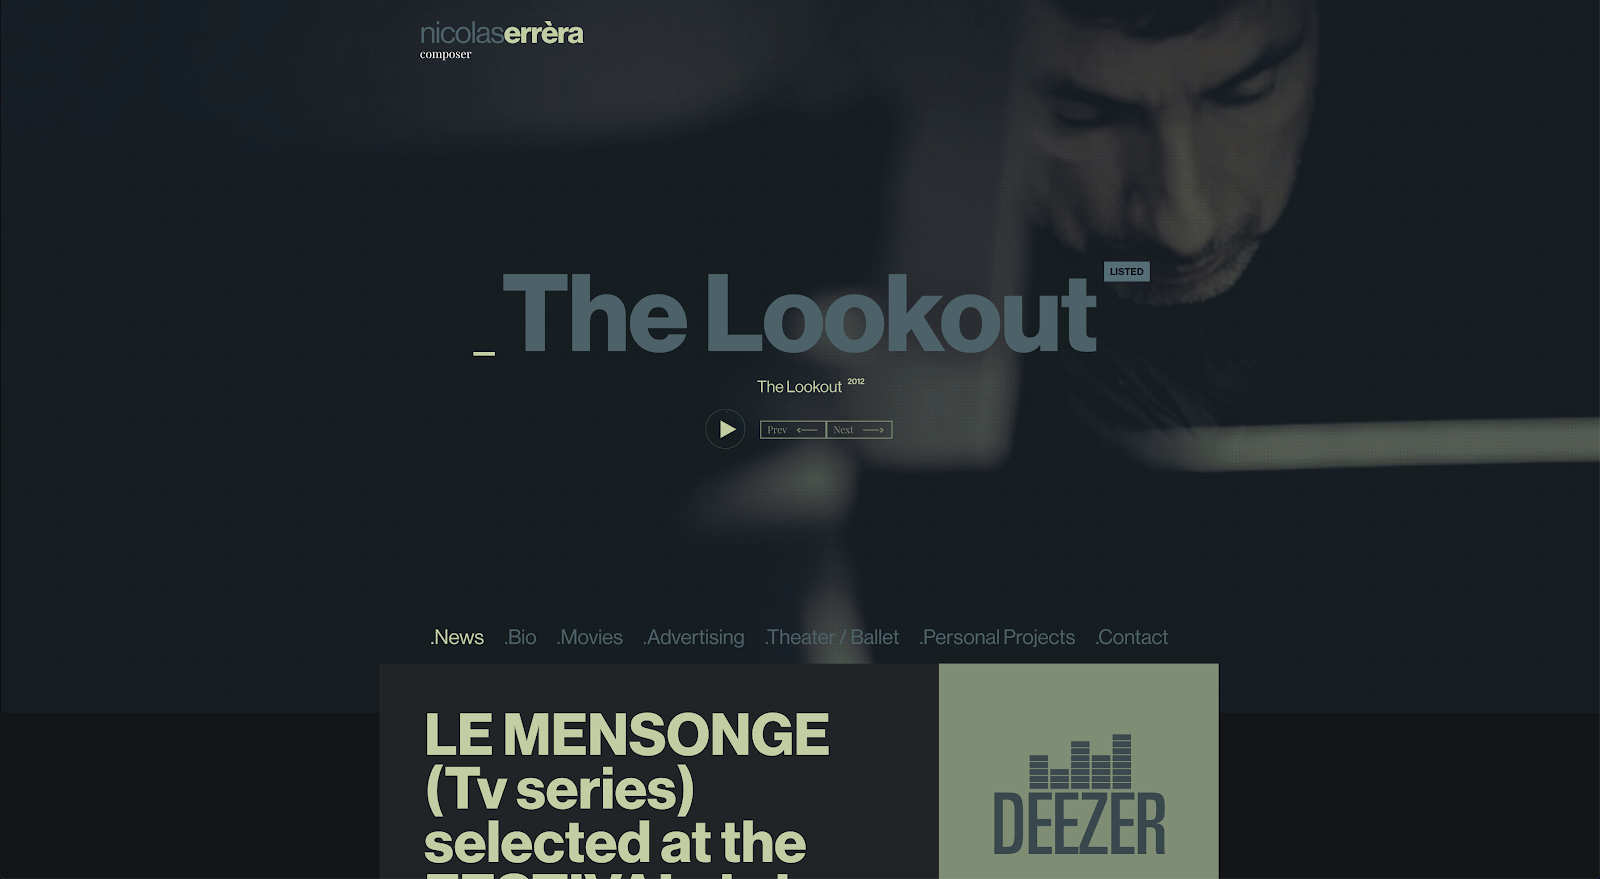 Nicolas Errera's website hero incorporates a beautiful full-width video with full user playback controls.